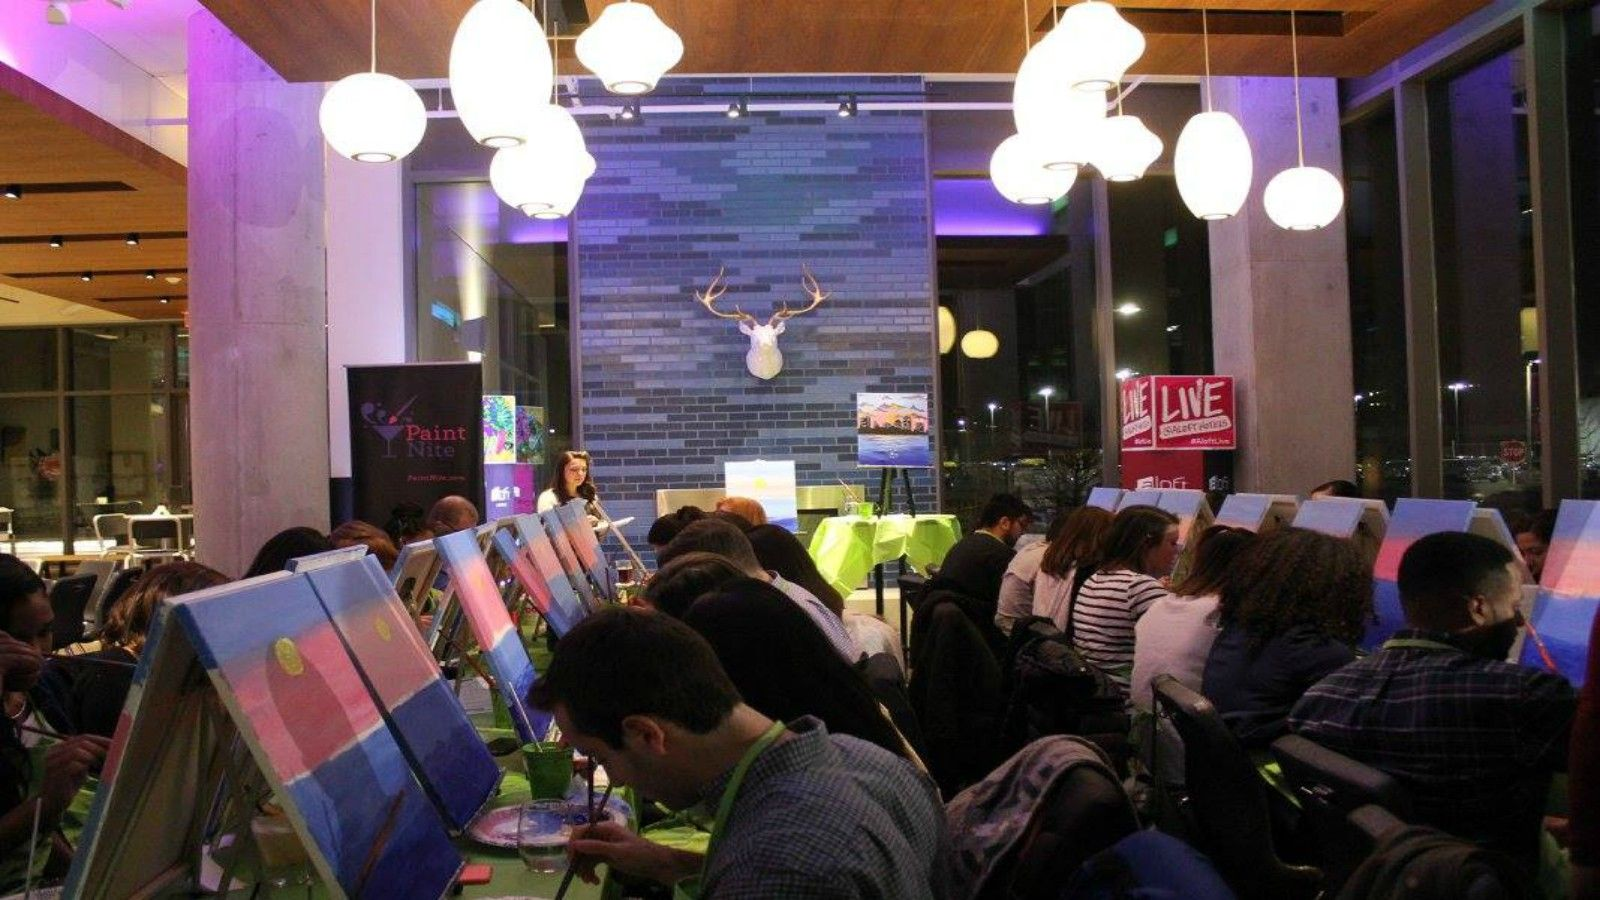 Boston Bars - Paint Nite